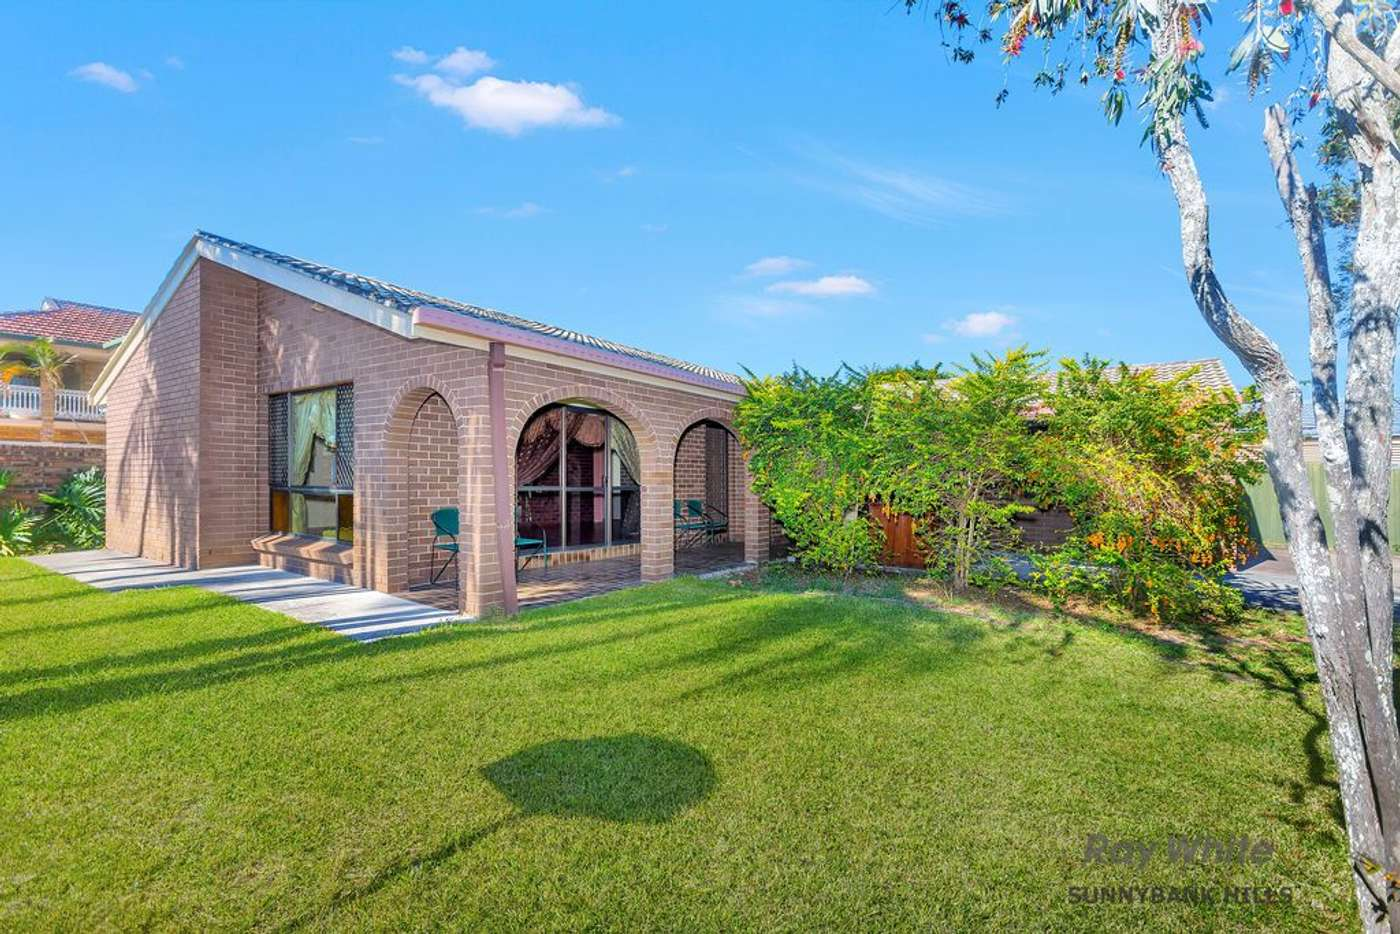 Main view of Homely house listing, 7 Excelsa Street, Sunnybank Hills QLD 4109